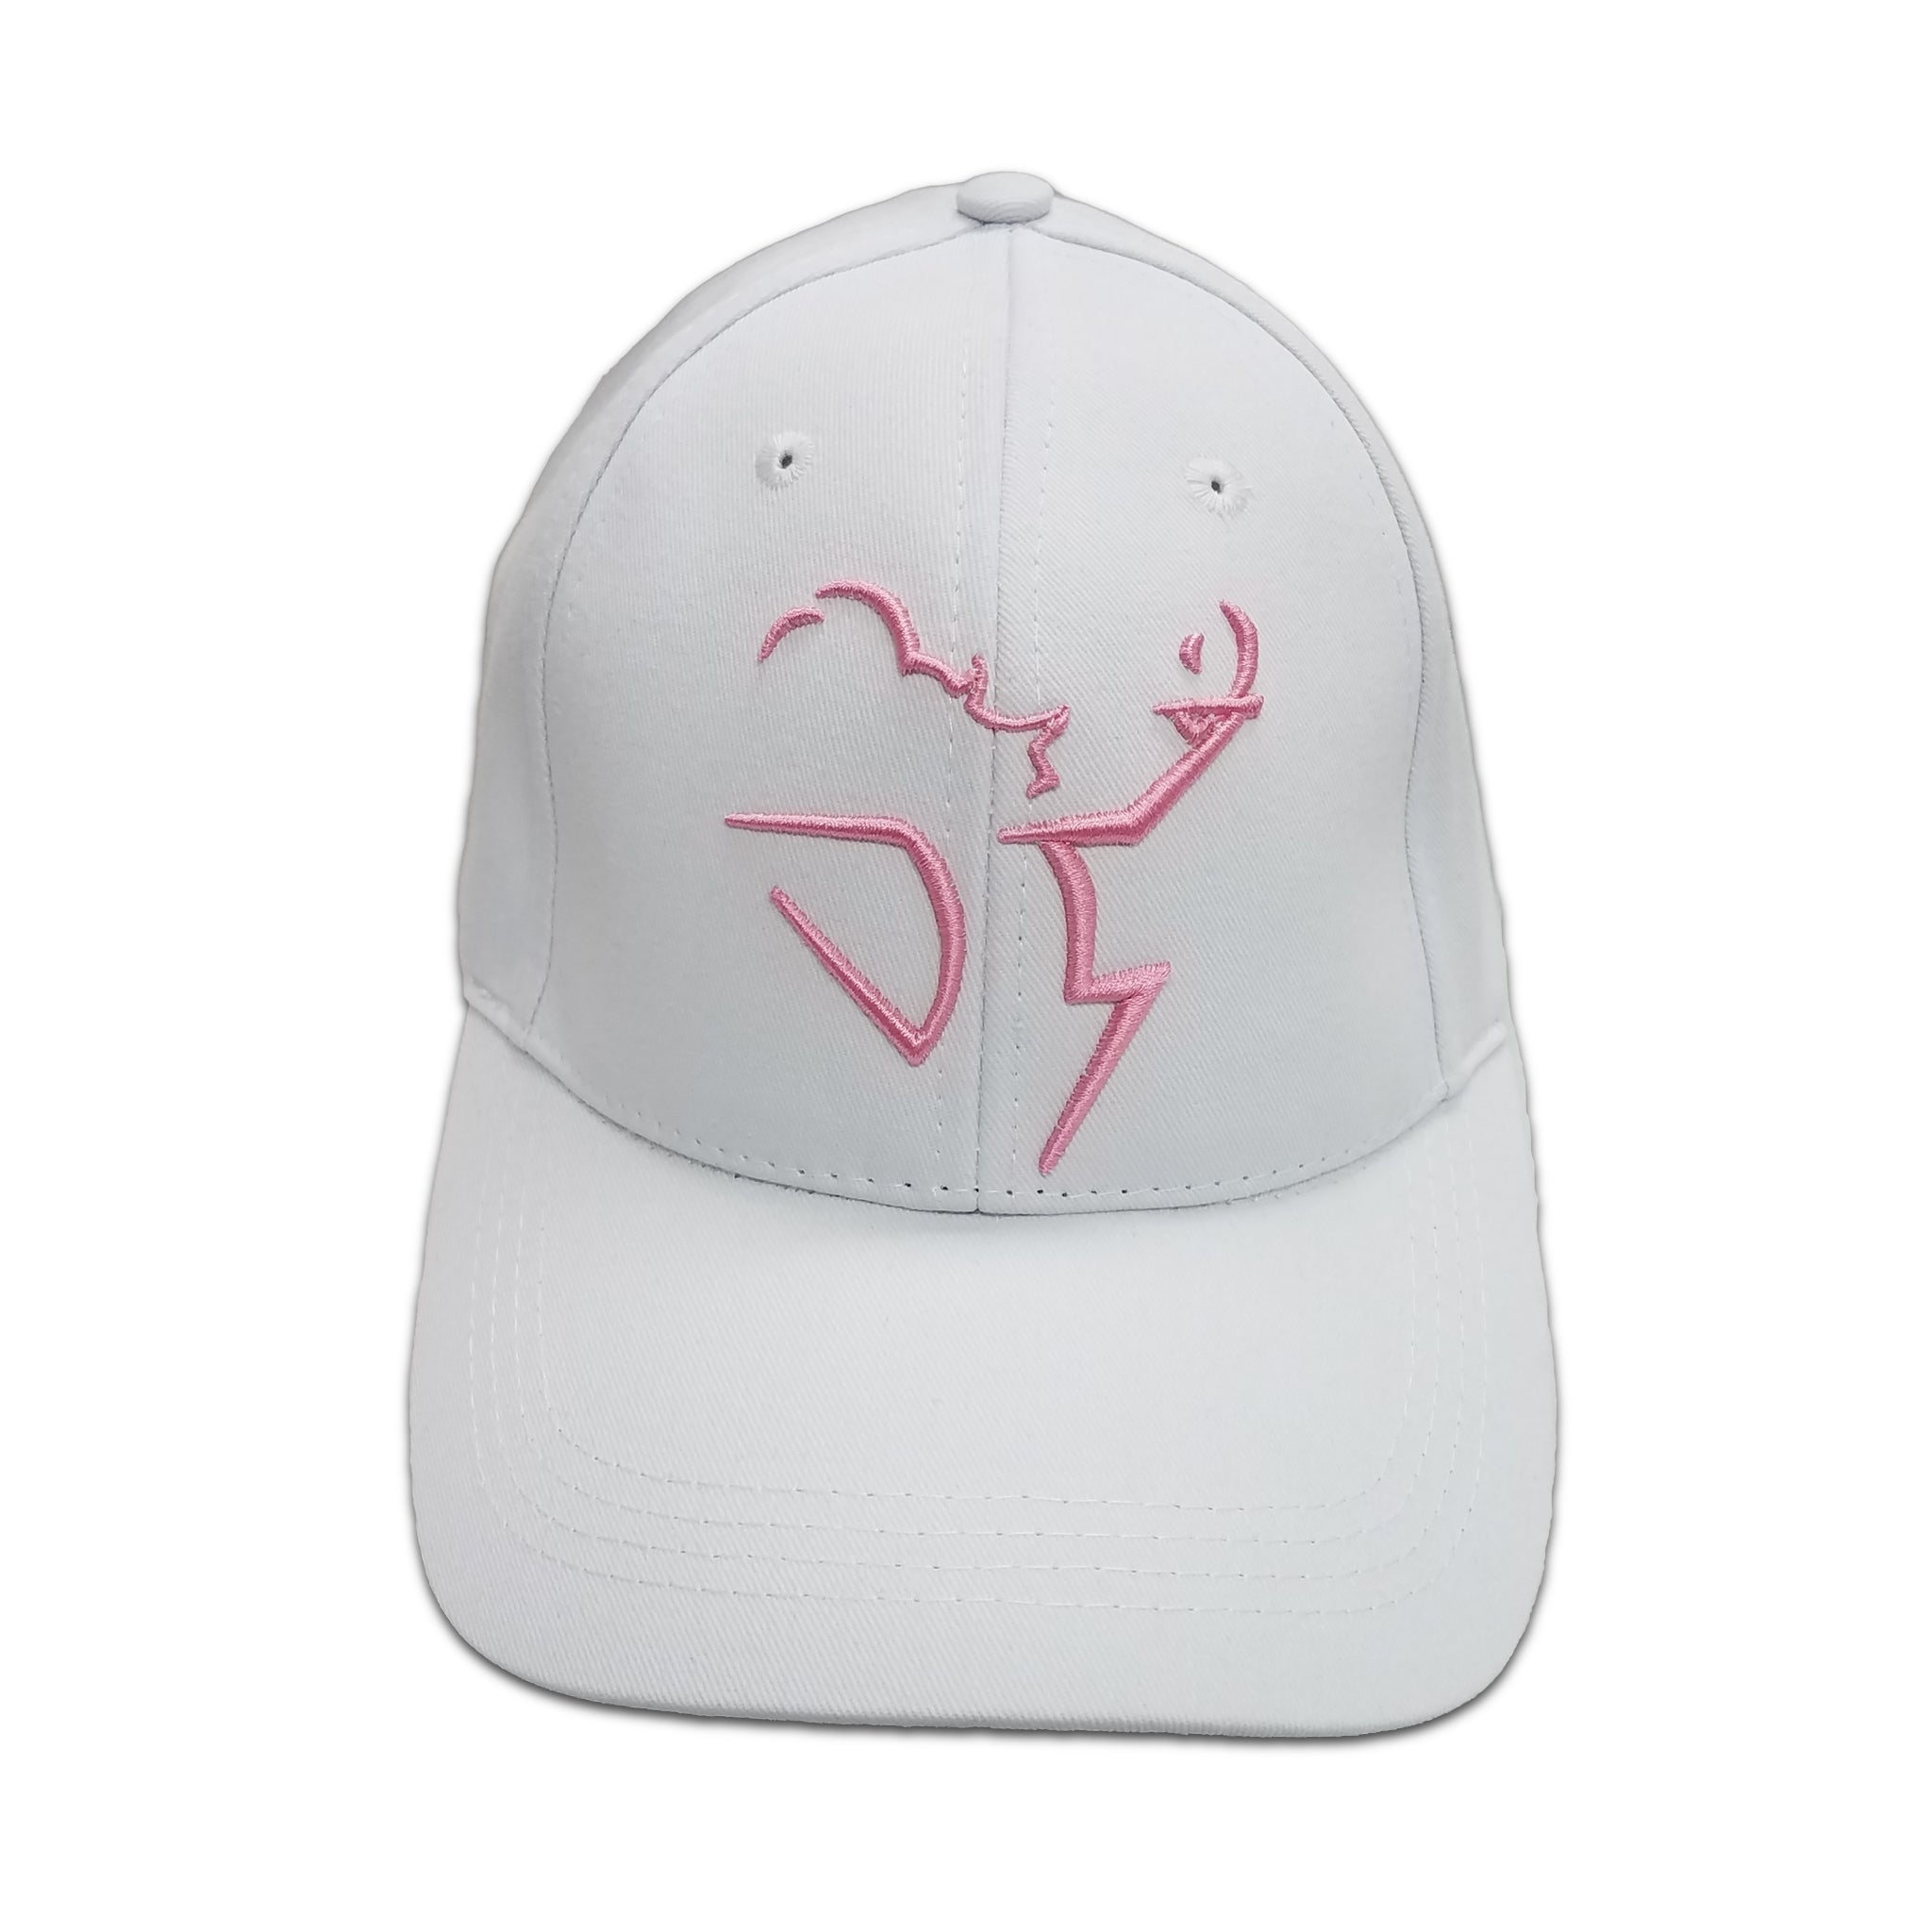 a801862584e9bd Women's Cotton Twill Baseball Hat with Outlined Logo in Pink ...